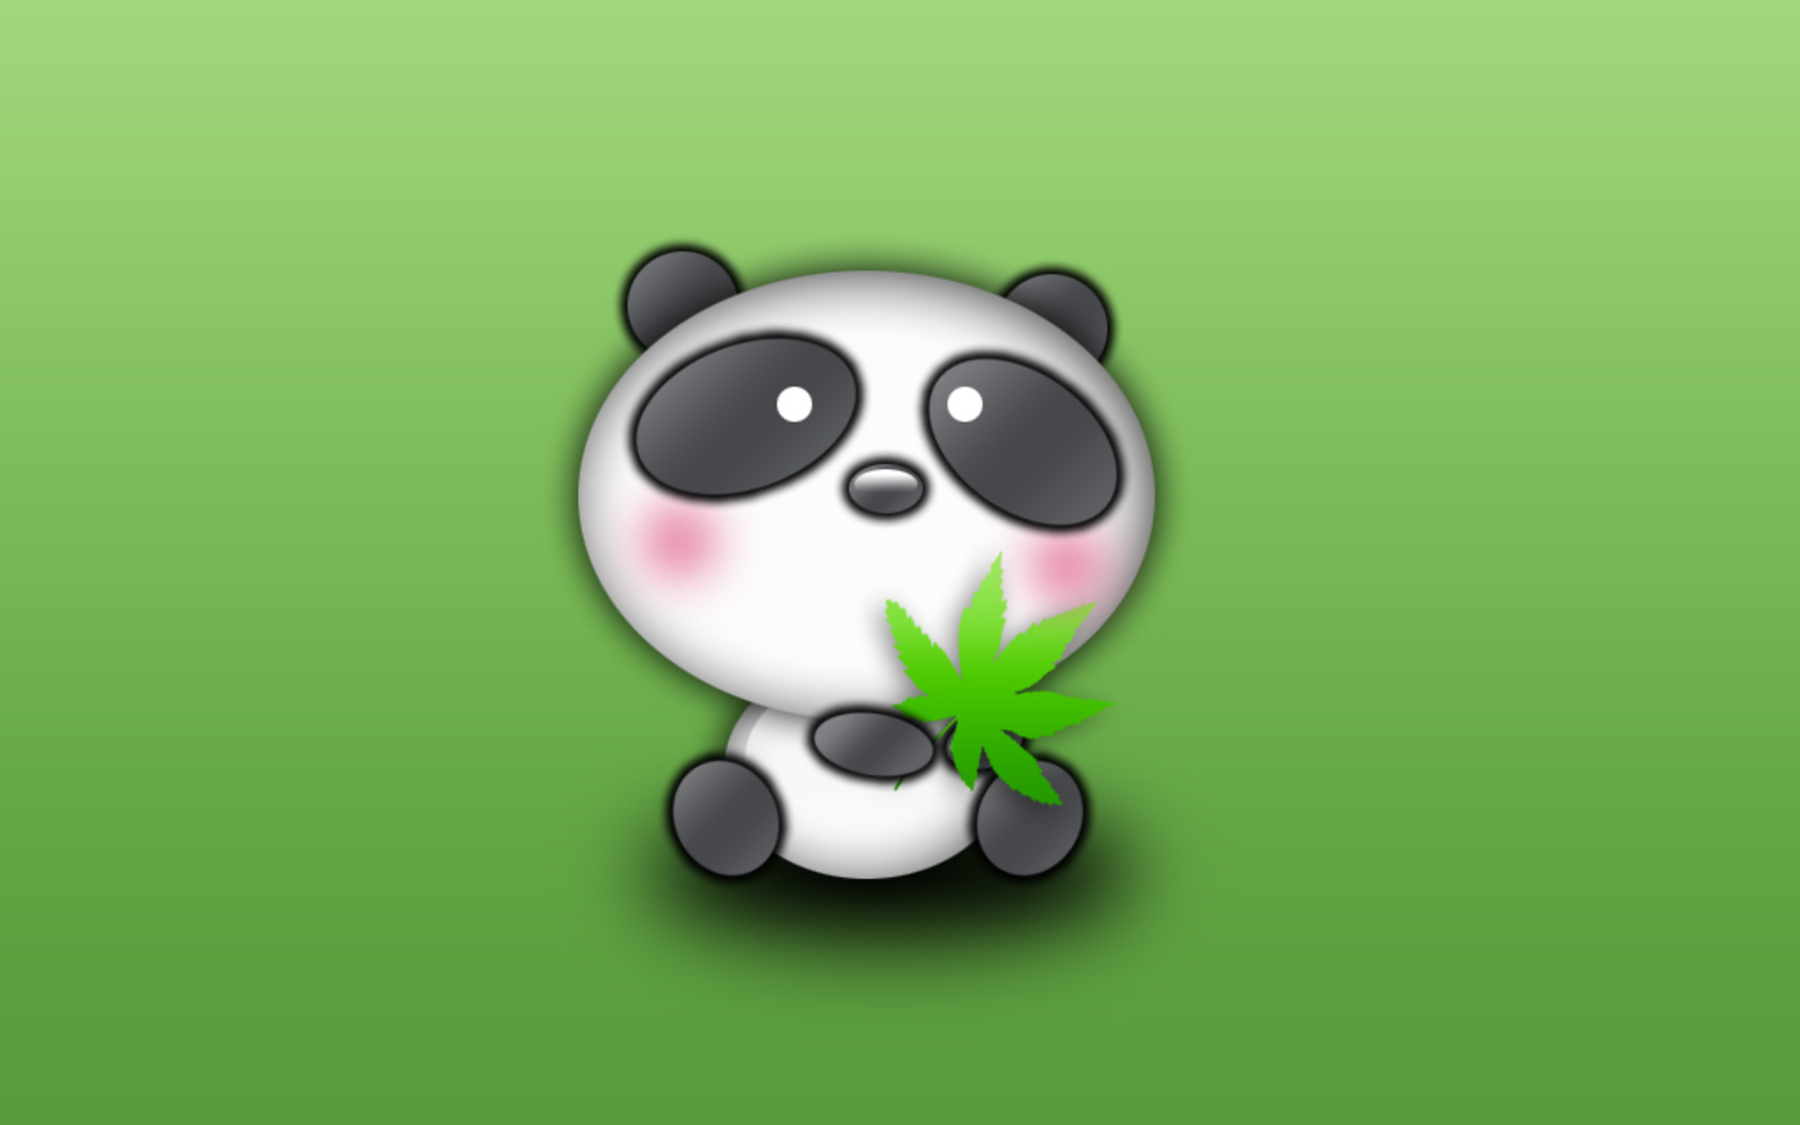 Cute Panda Cartoon Wallpaper